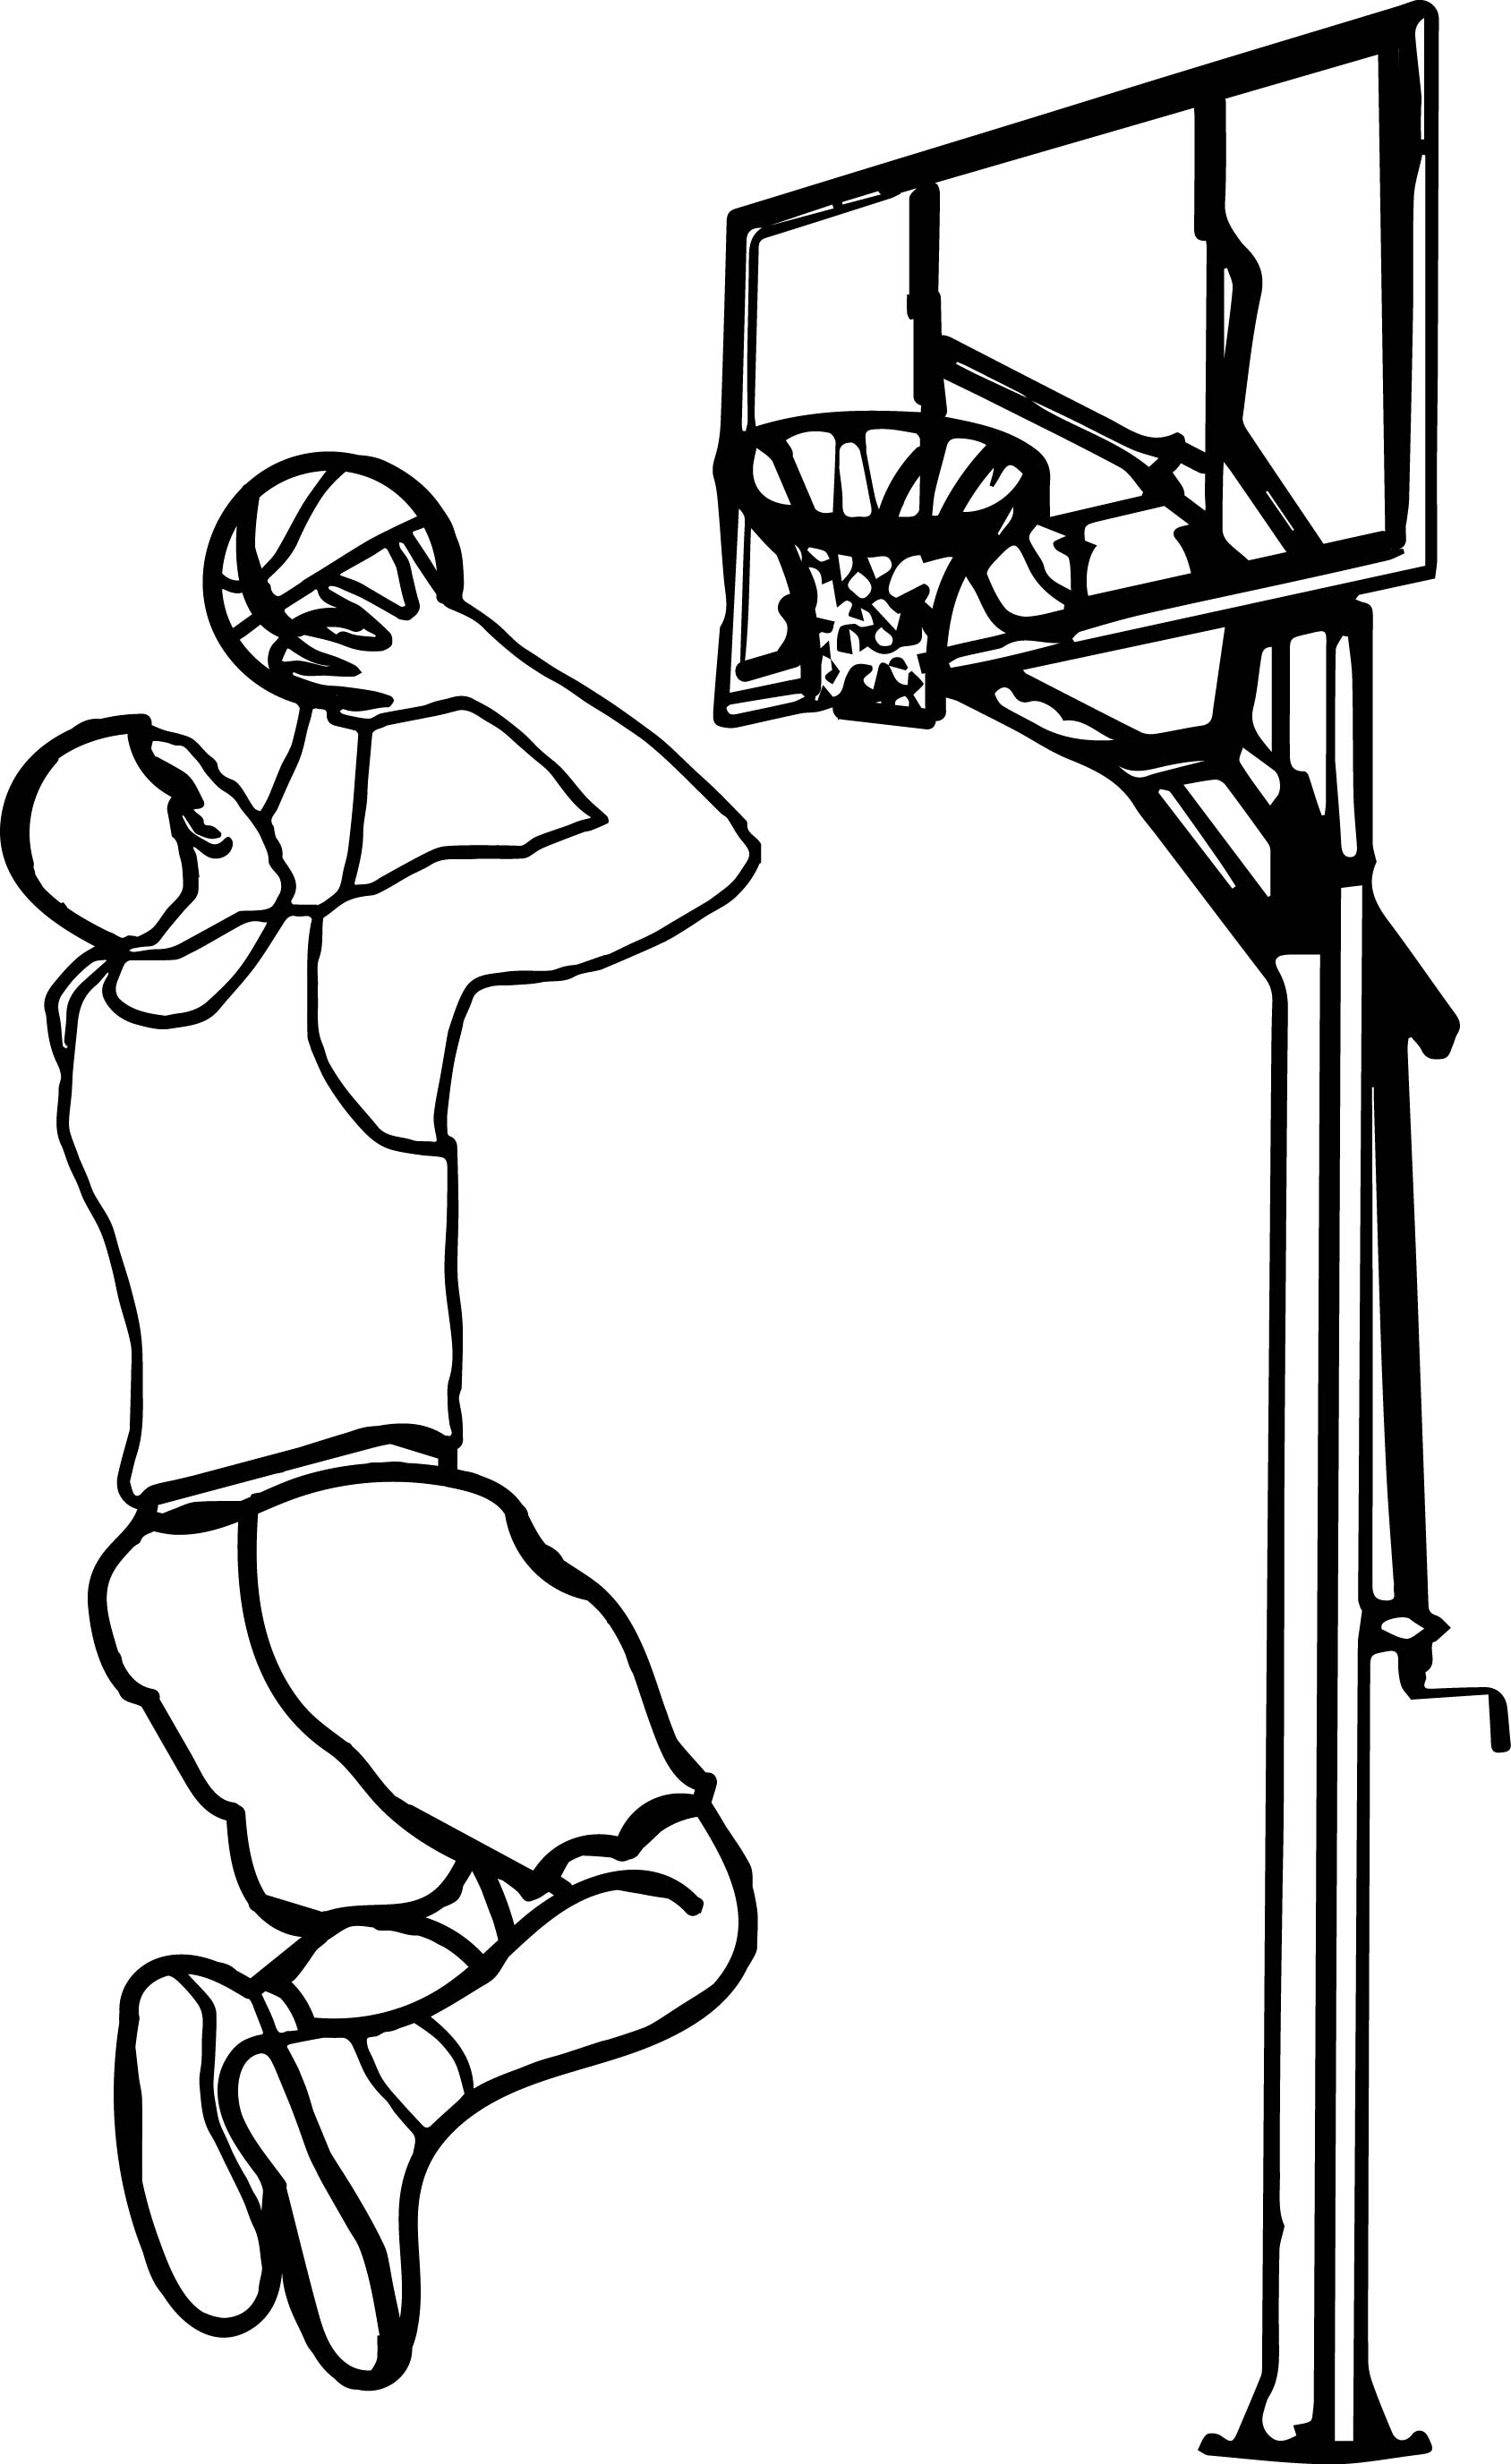 The Basketball Clipart For My Friend Thatrsquos You Playing Basketball Coloring Page